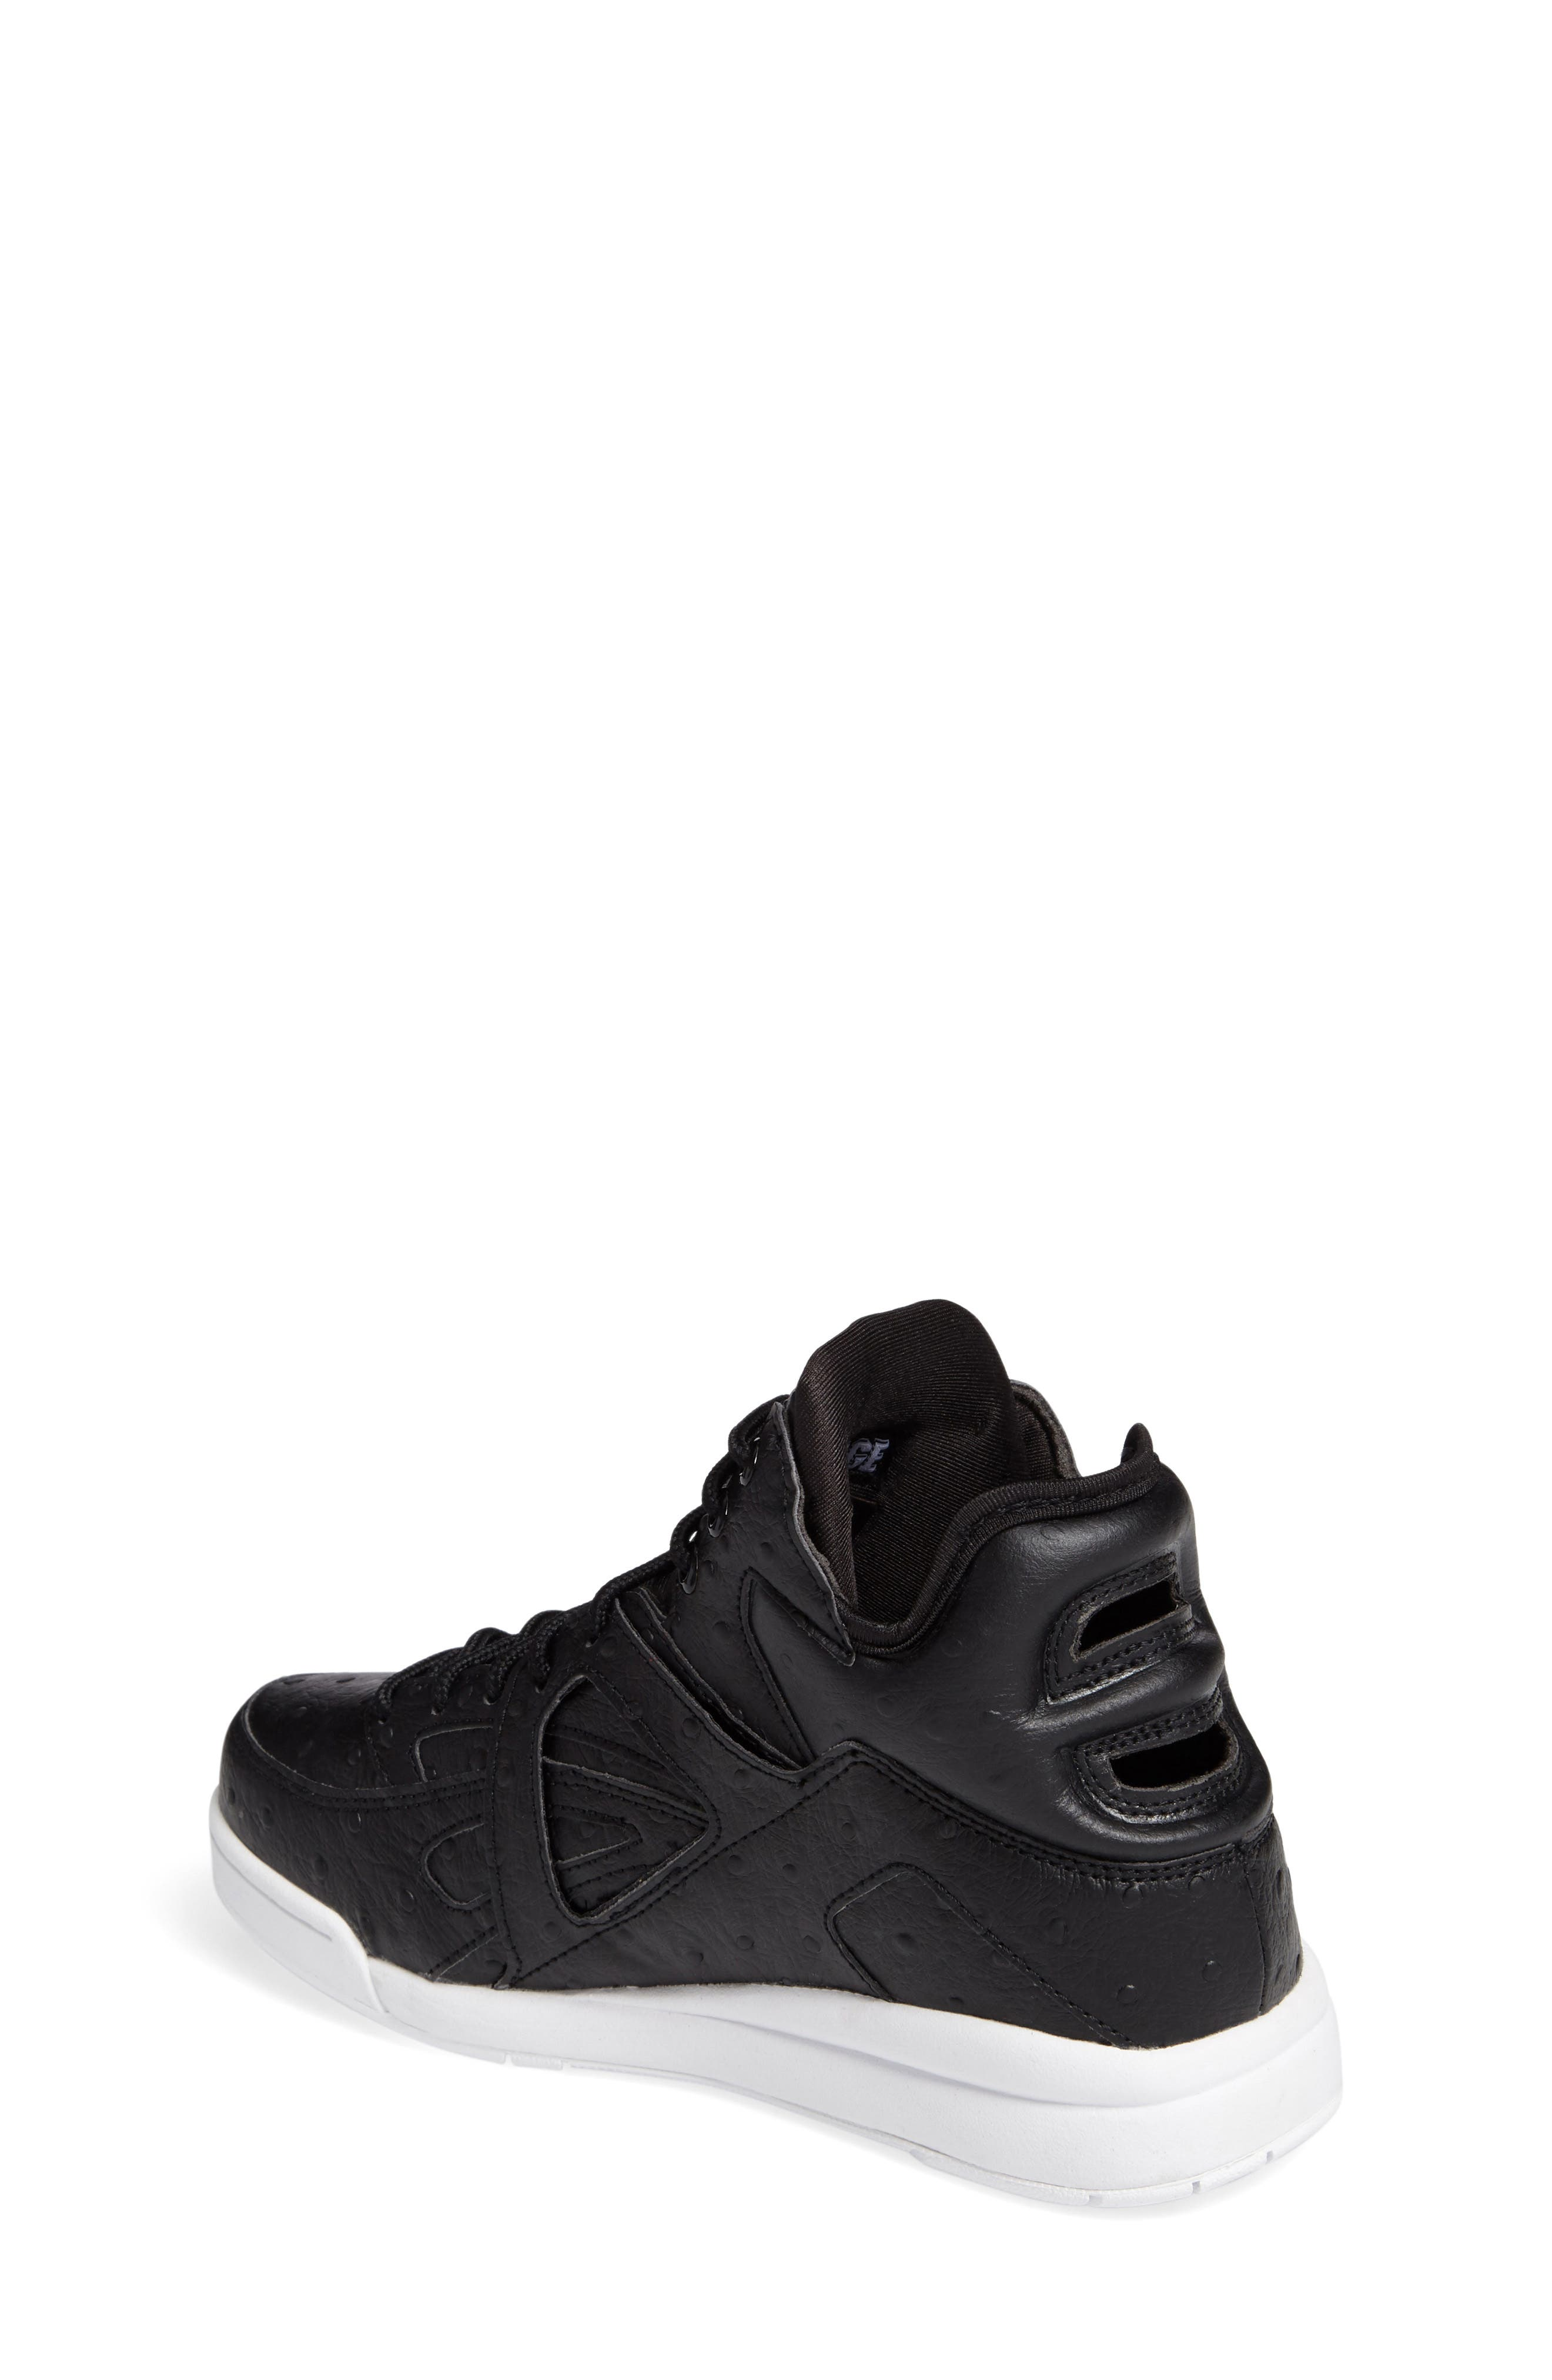 The Cage Ostrich Sneaker,                             Alternate thumbnail 2, color,                             Black